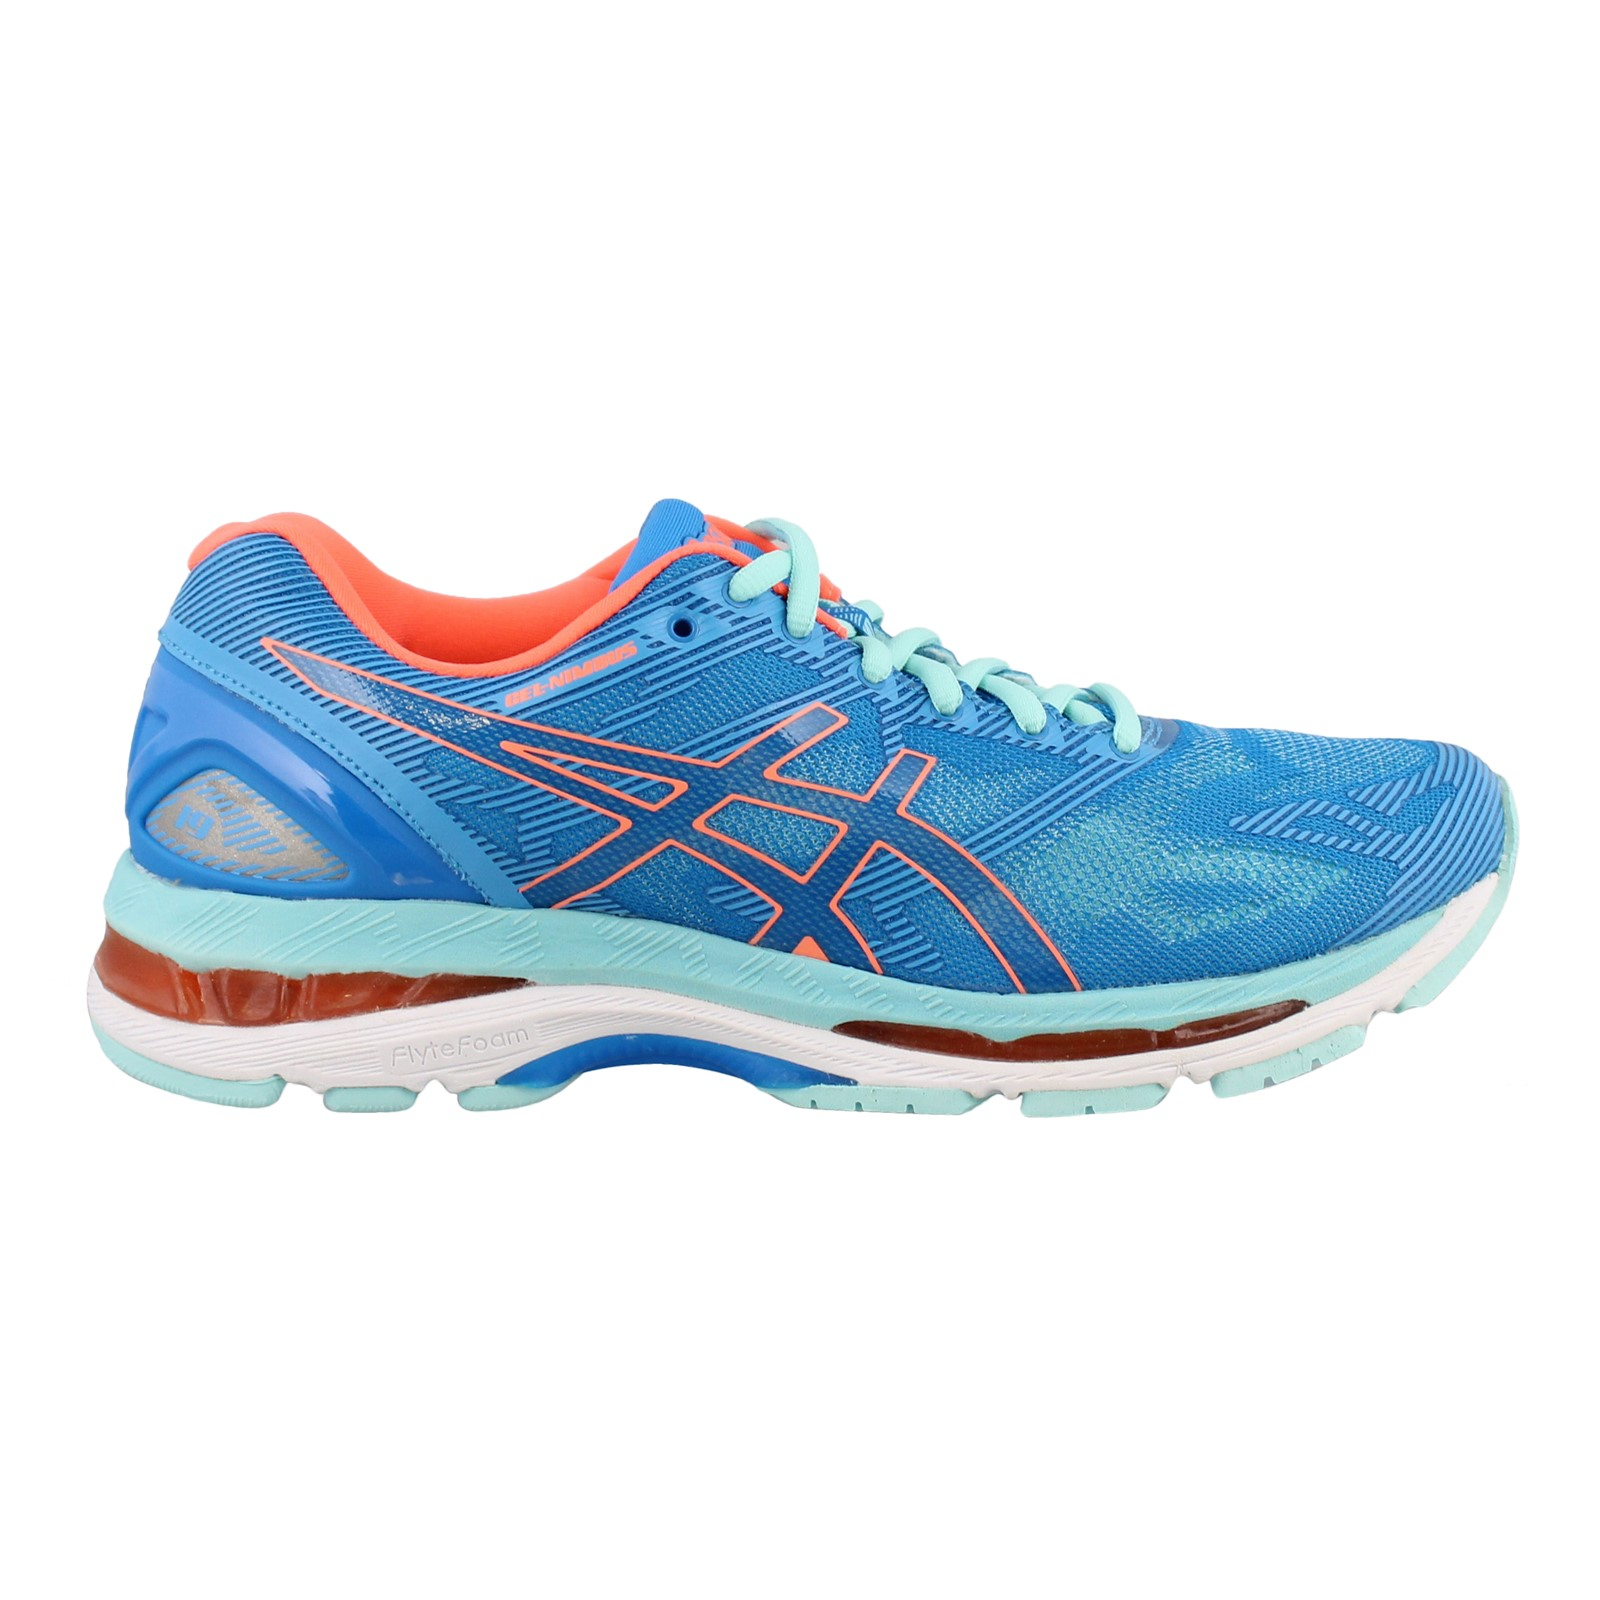 differently 6c615 92be1 Women's Asics, Gel Nimbus 19 Running Sneakers